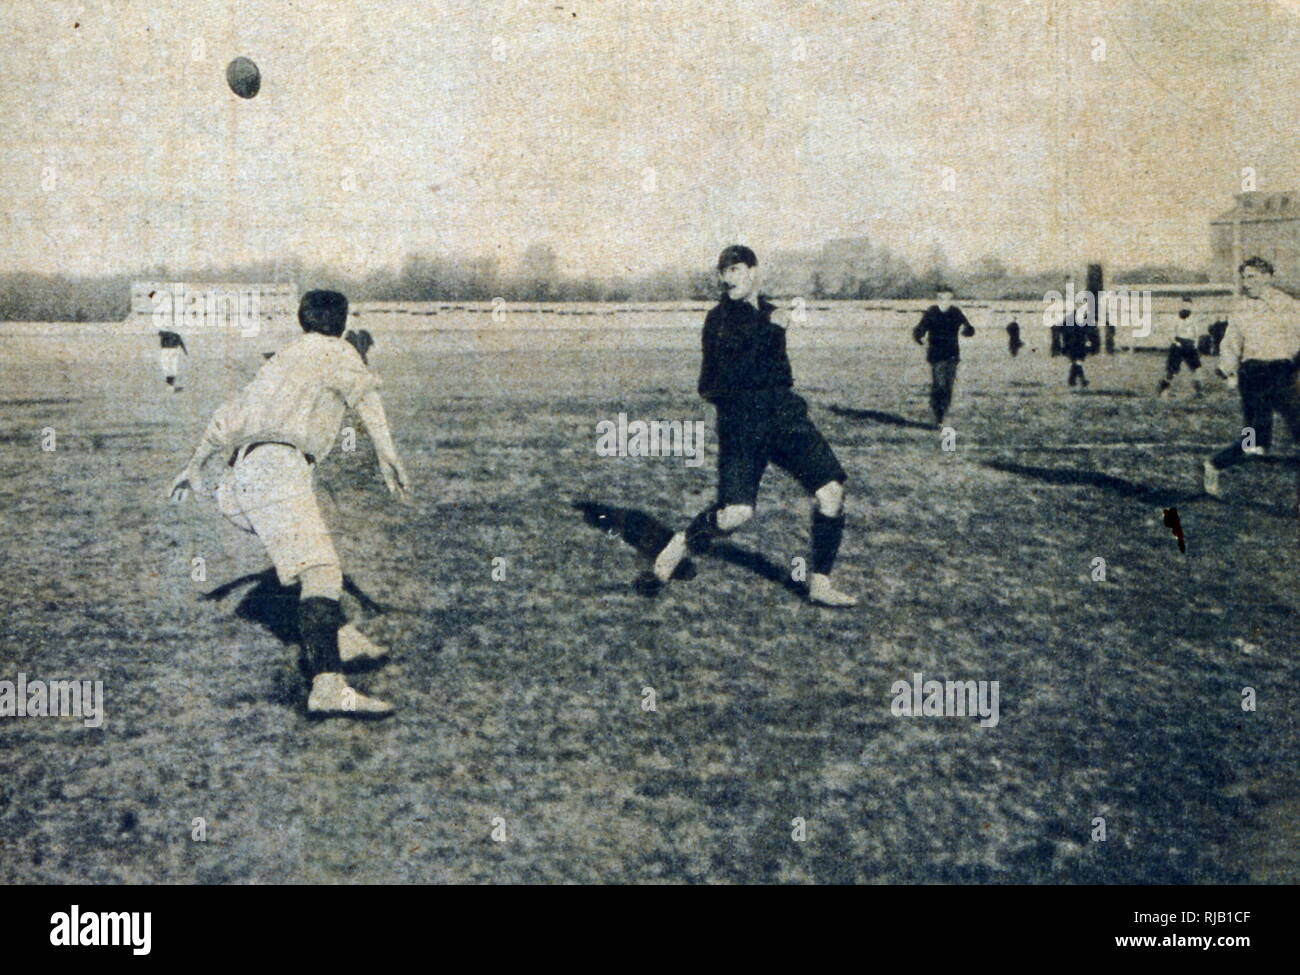 vintage football match, France 1902 - Stock Image